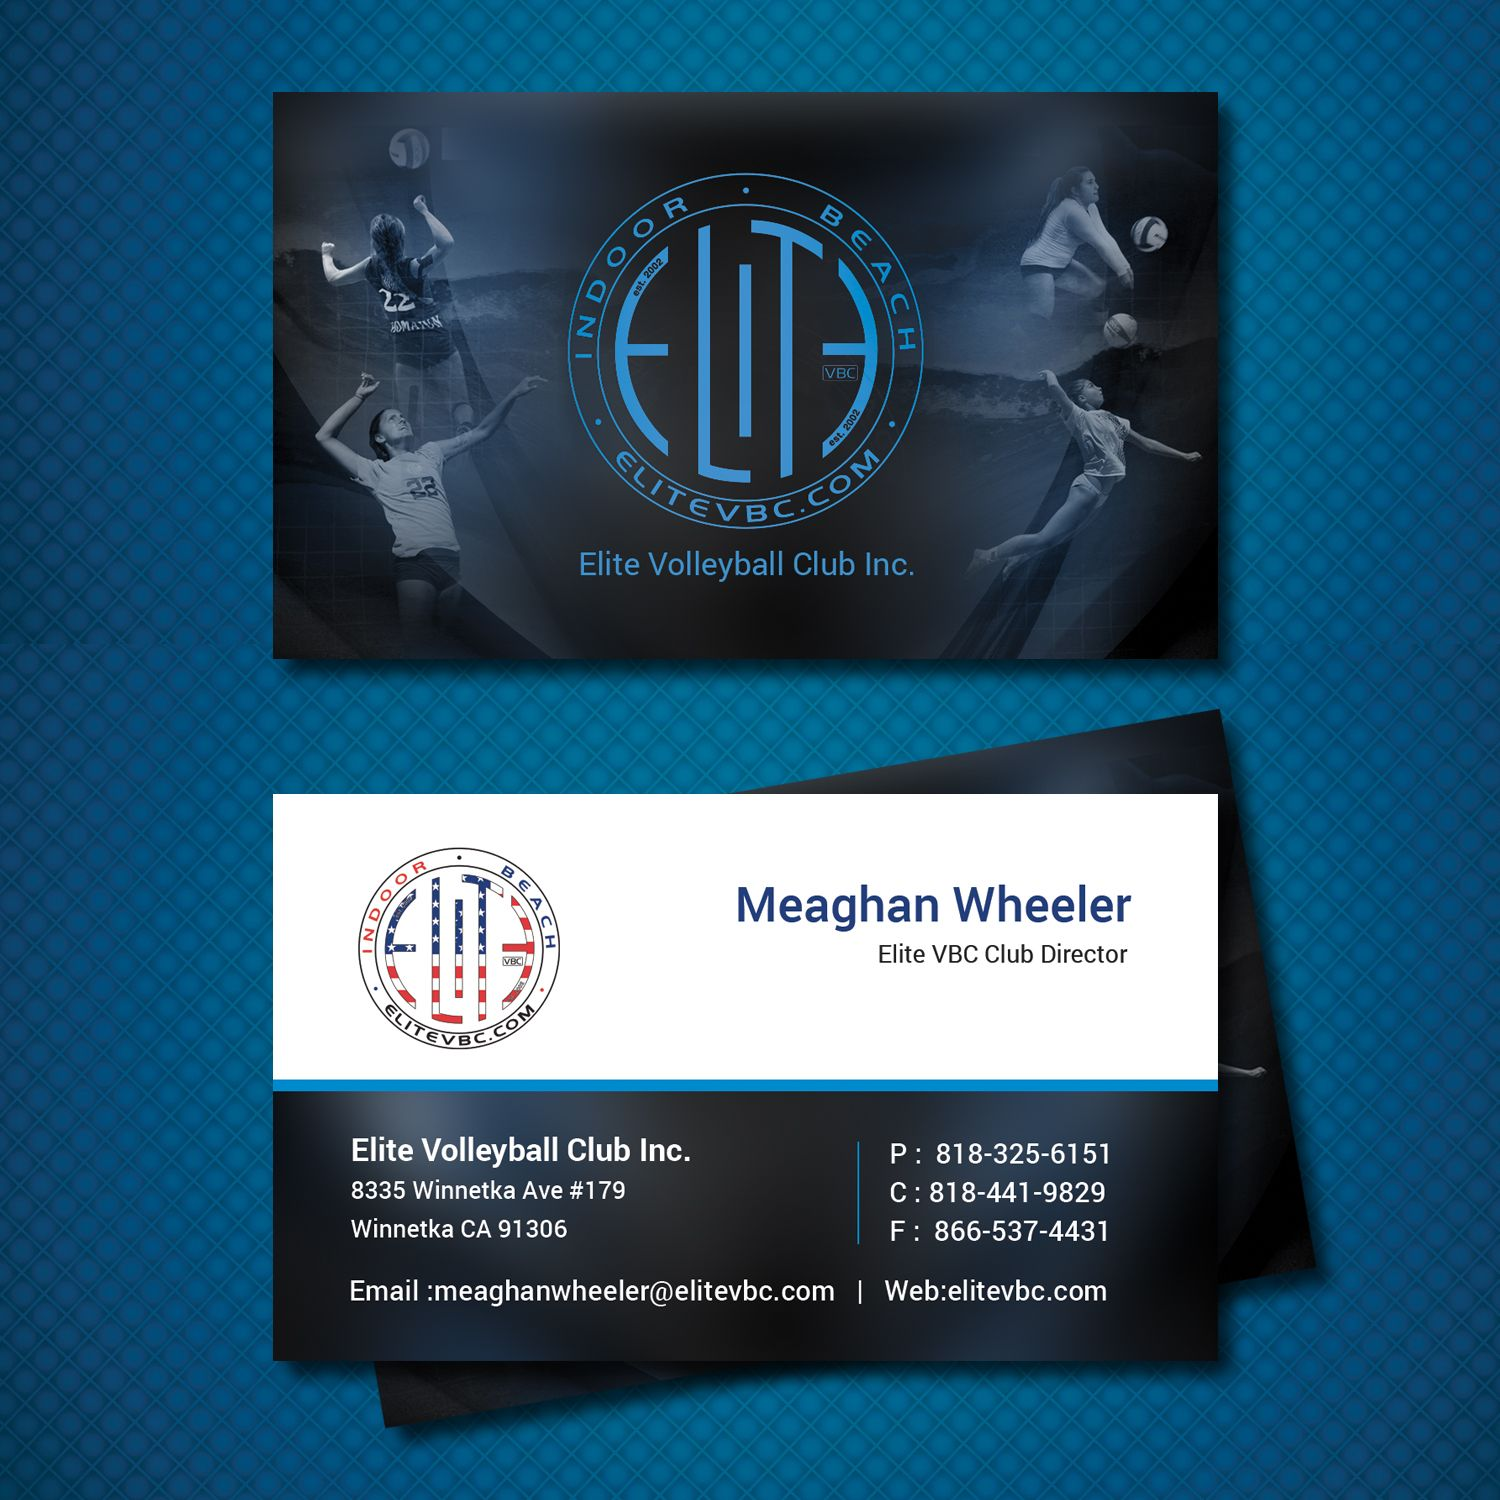 37 Business Card Designs Business Business Card Design Project For The Elite Volleyball Club Inc Business Card Design Art Business Cards Card Design